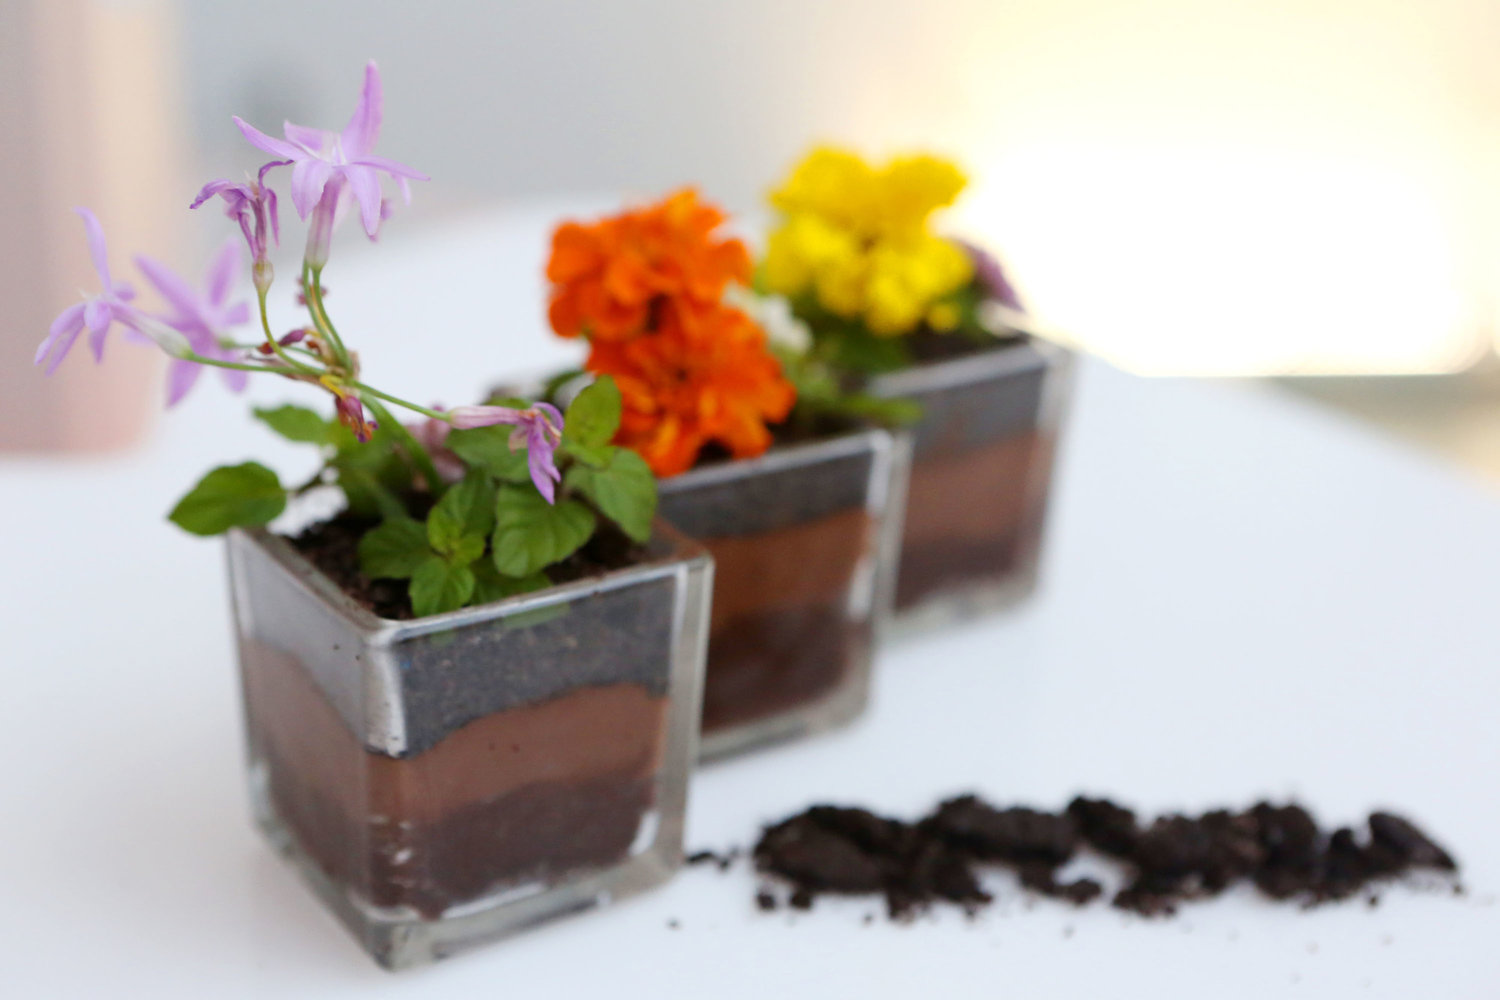 Edible Flowers in a bed of Oreo Crumble, Chocolate Mousse & Chocolate Cake